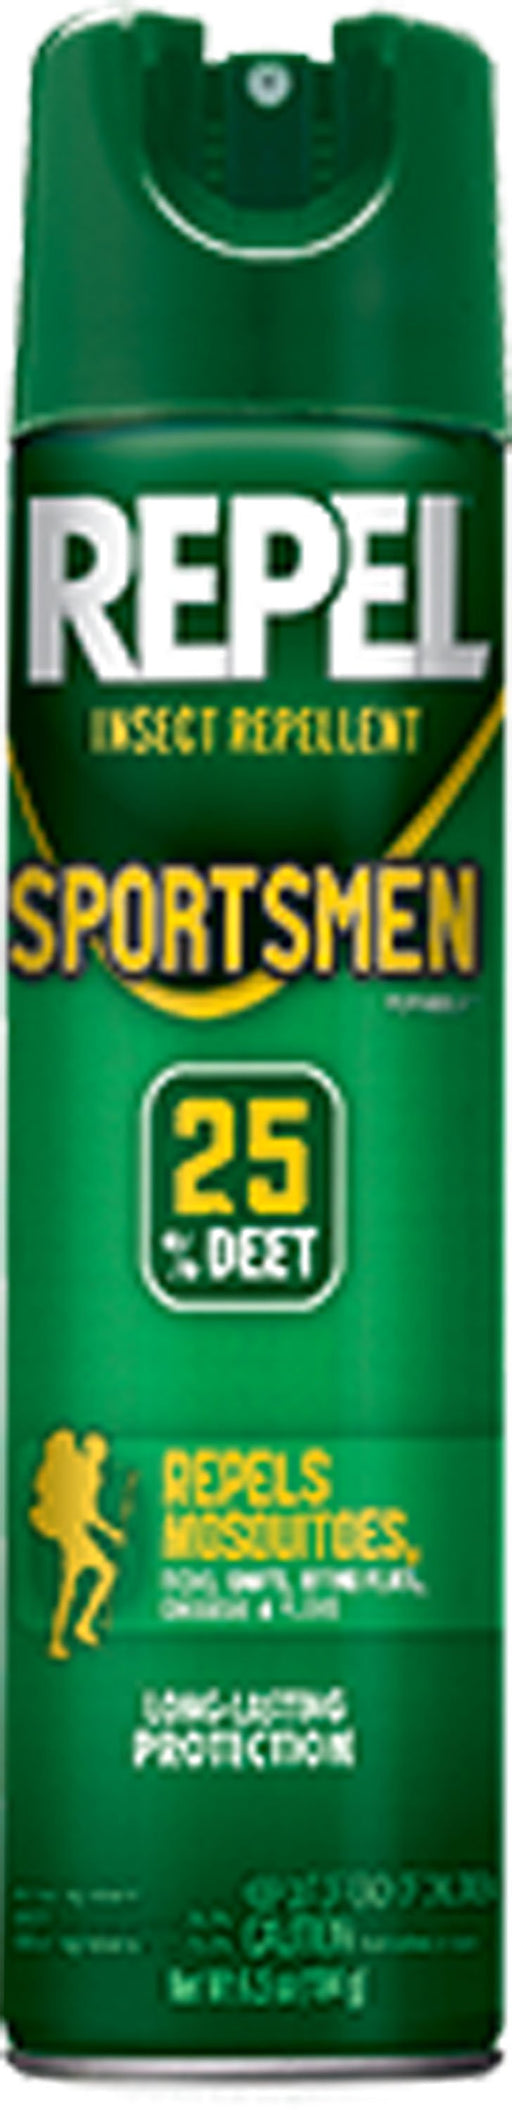 Spectracide - Sportsman Repellant Aerosol (Case Of 12 )-Pet-Spectracide-6.5OZ-EpicWorldStore.com